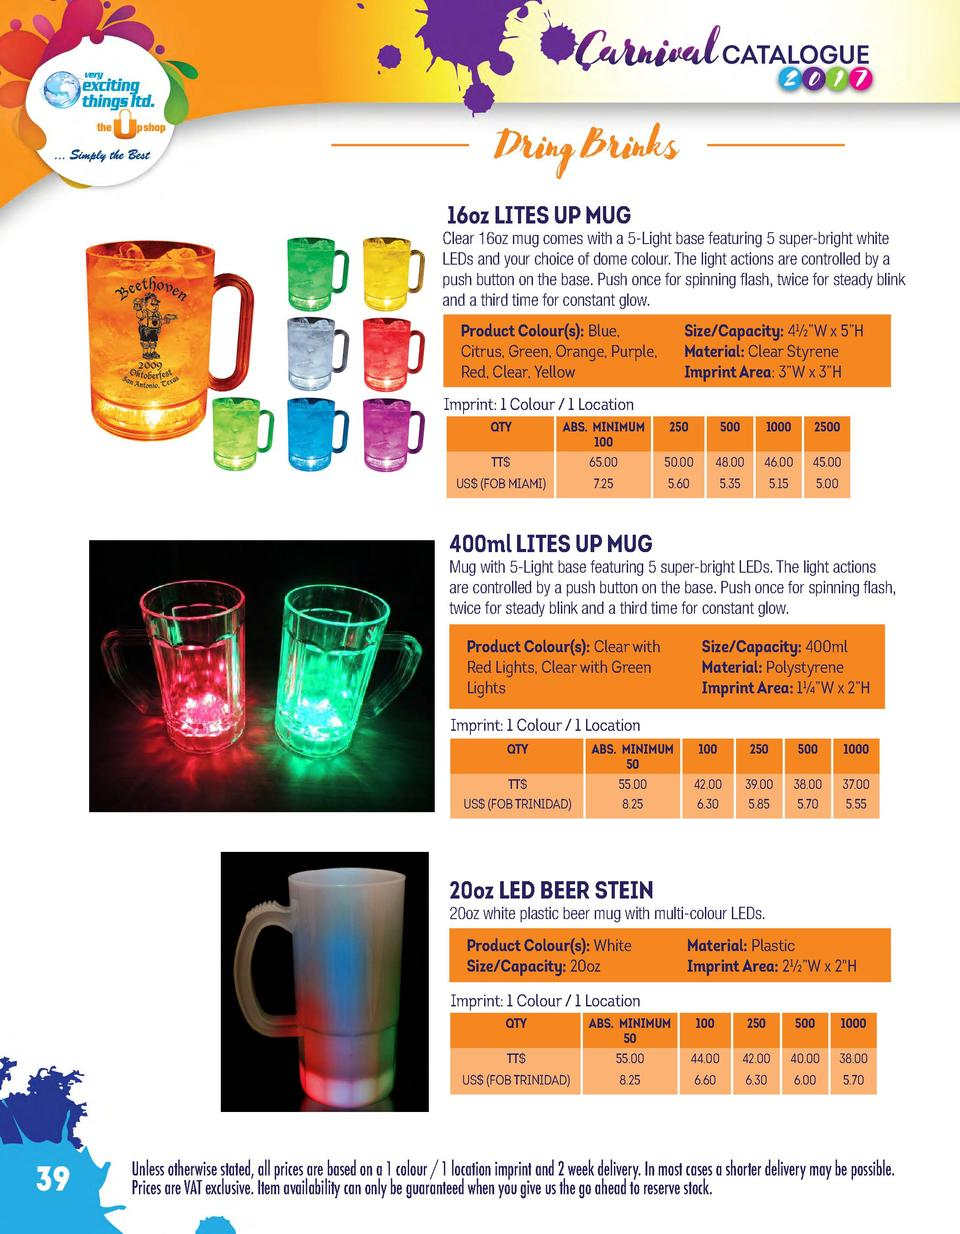 Dring Brinks 16oz LITES UP MUG  Clear 16oz mug comes with a 5-Light base featuring 5 super-bright white LEDs and your choi...